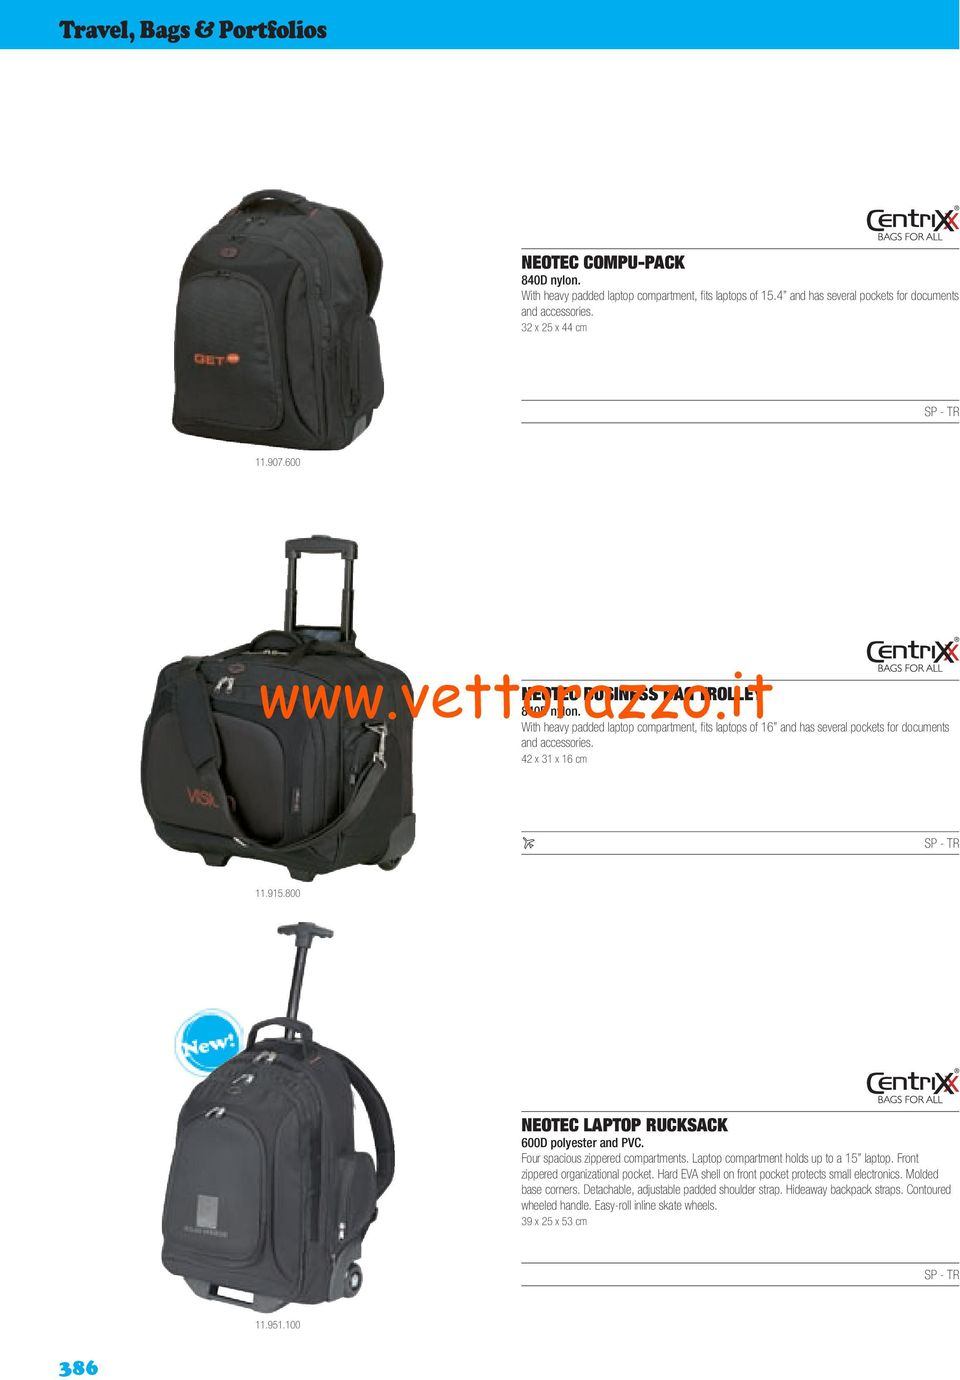 800 NEOTEC LAPTOP RUCKSACK 600D polyester and PVC. Four spacious zippered compartments. Laptop compartment holds up to a 15 laptop. Front zippered organizational pocket.